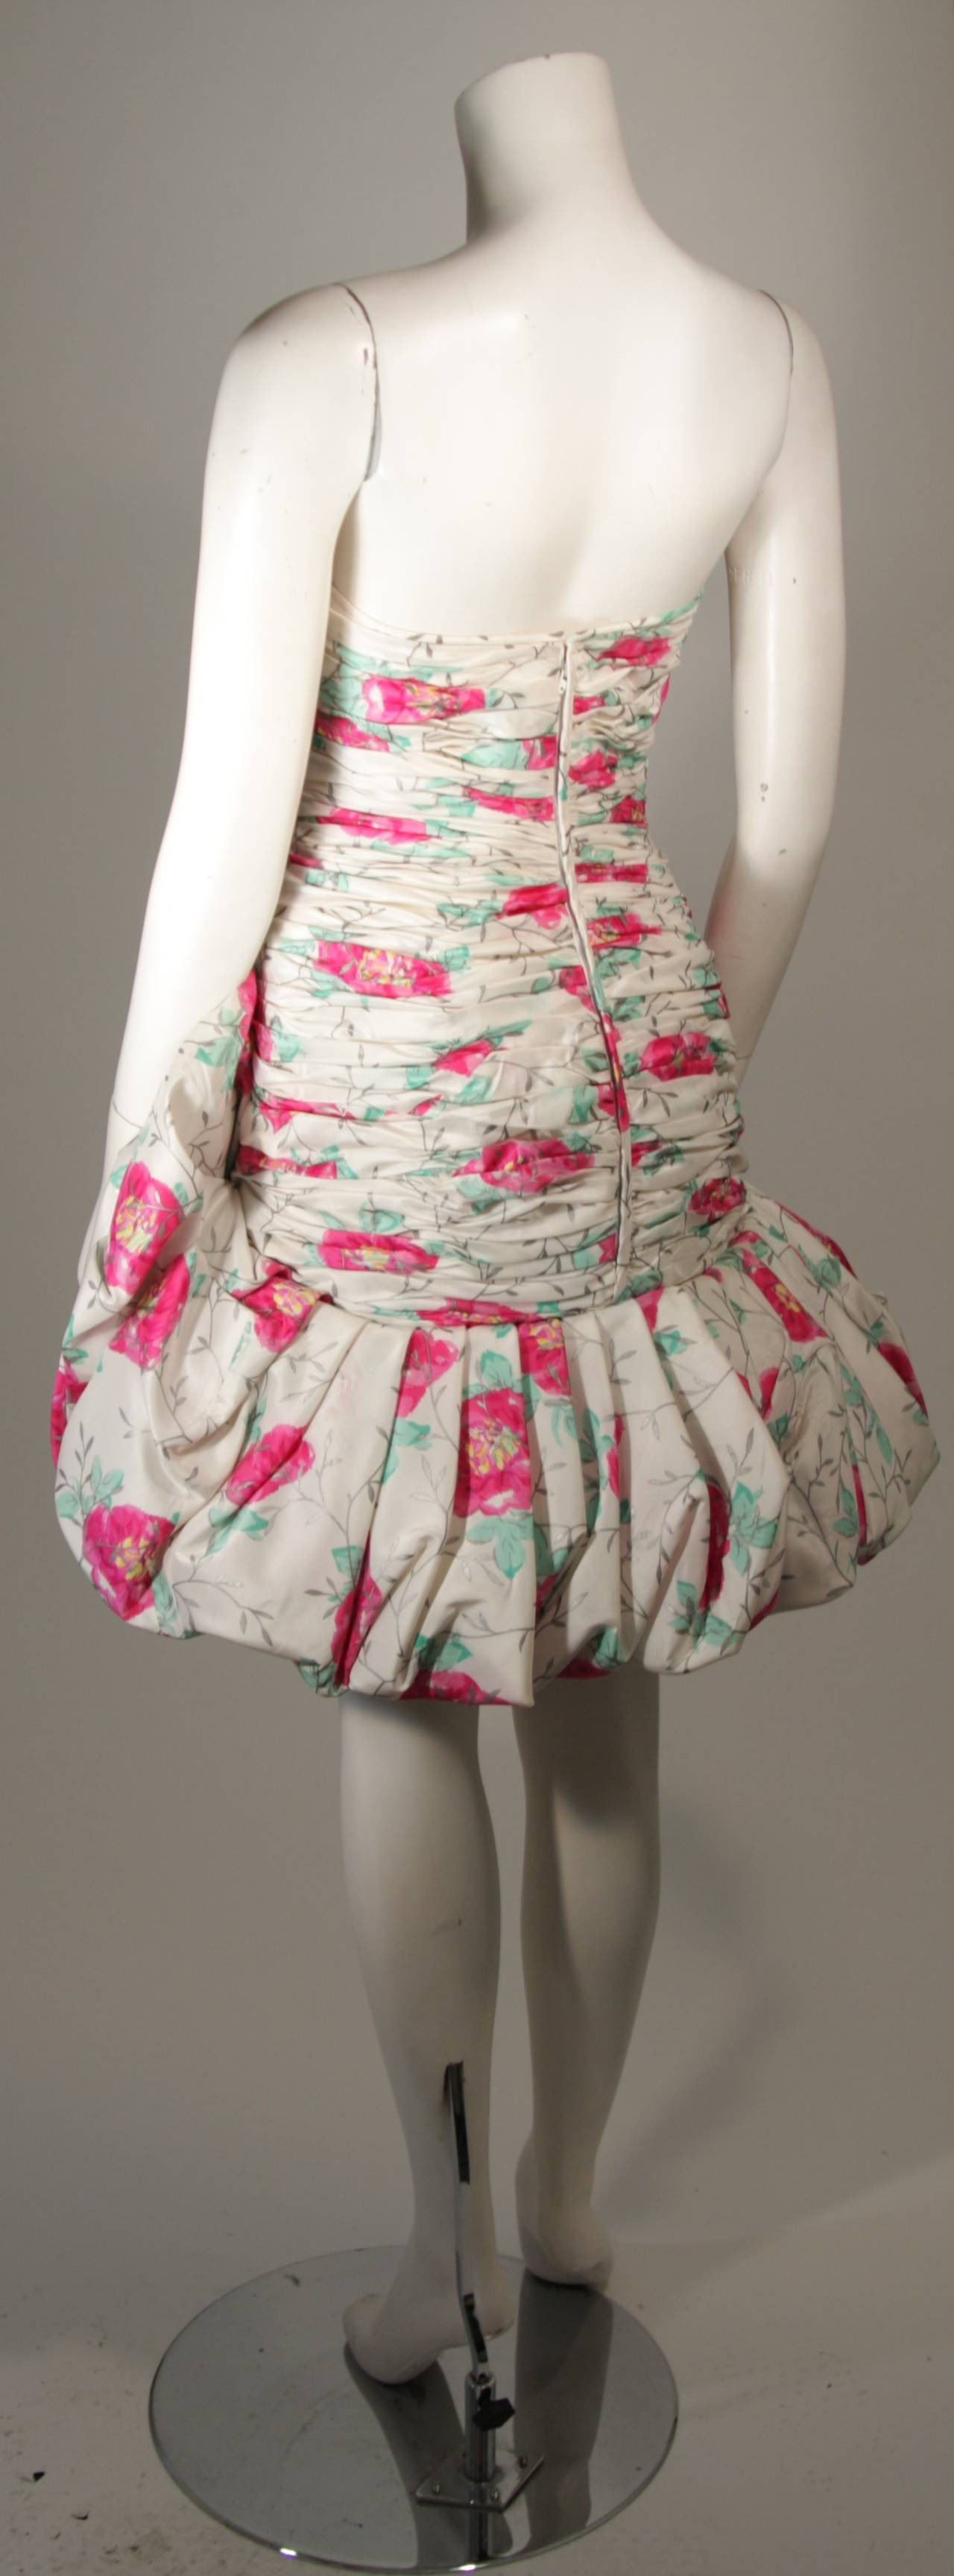 Ungaro White Silk Cocktail Dress with Pink & Green Floral Design Size 8 For Sale 2